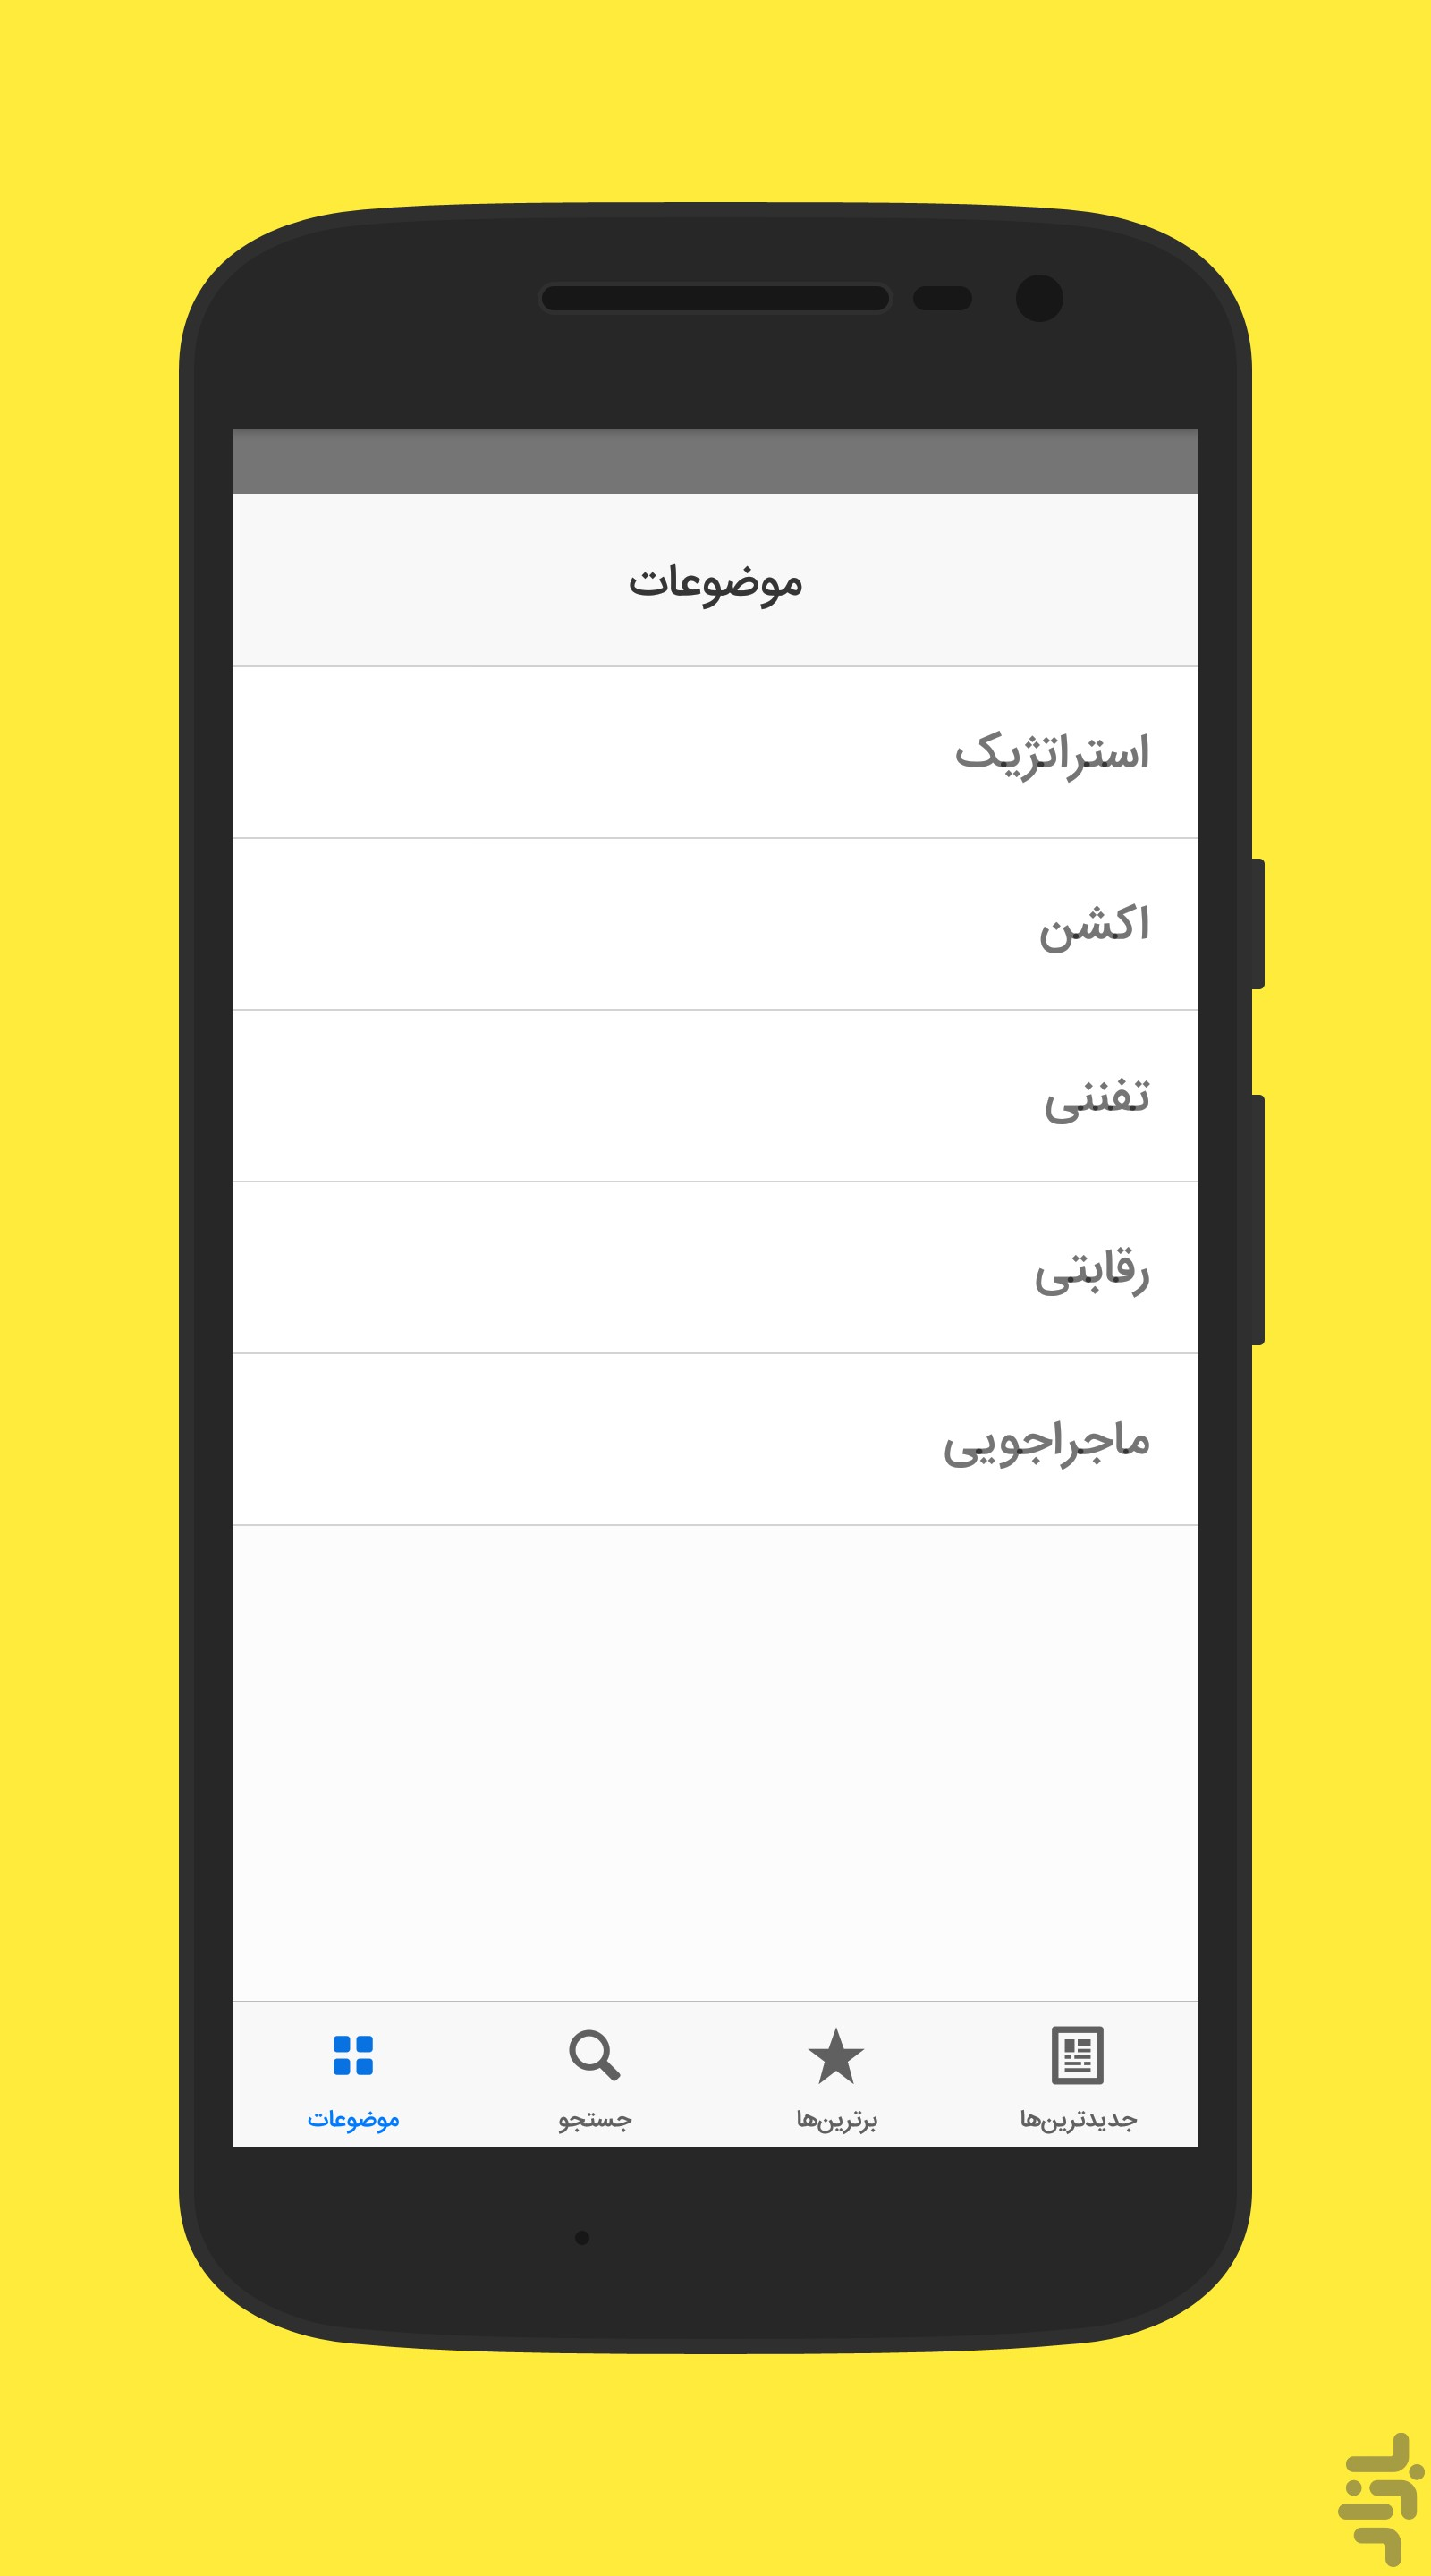 گیم تایم screenshot